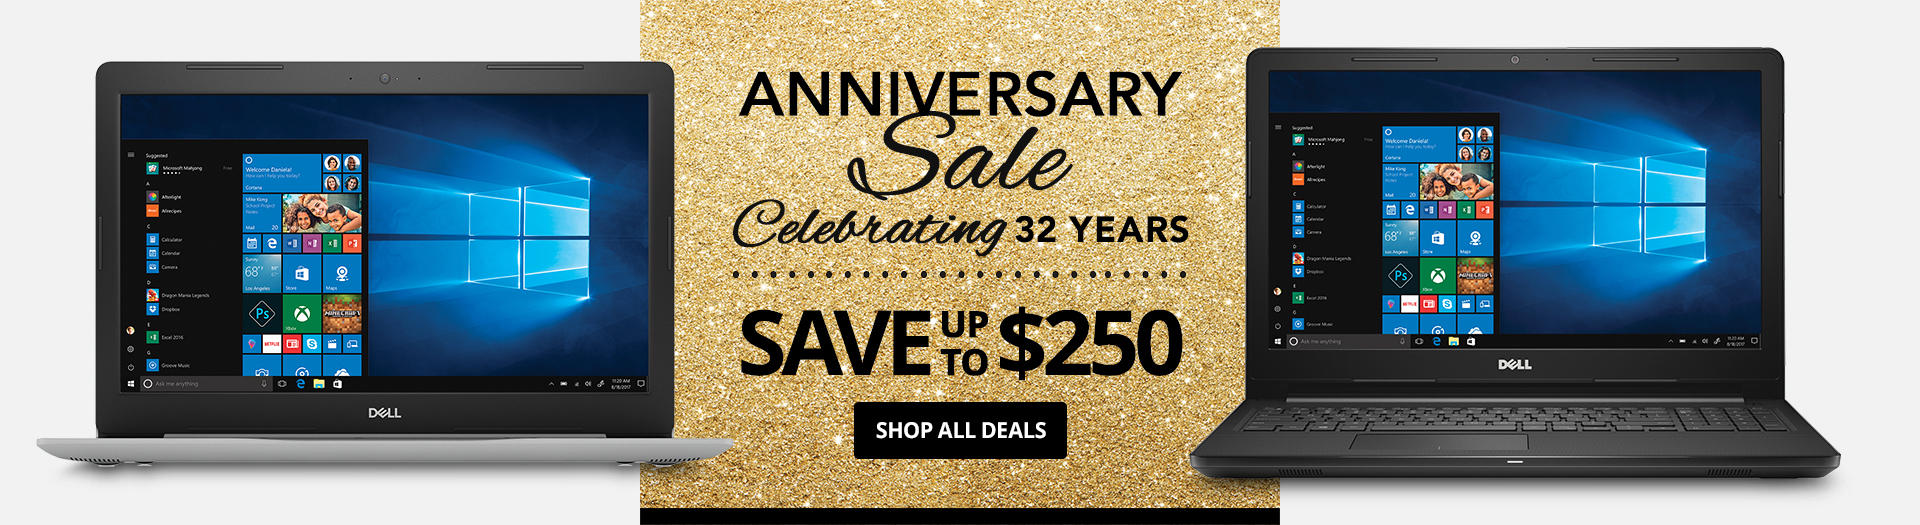 Its our 32nd Anniversary! Enjoy savings up to xx%